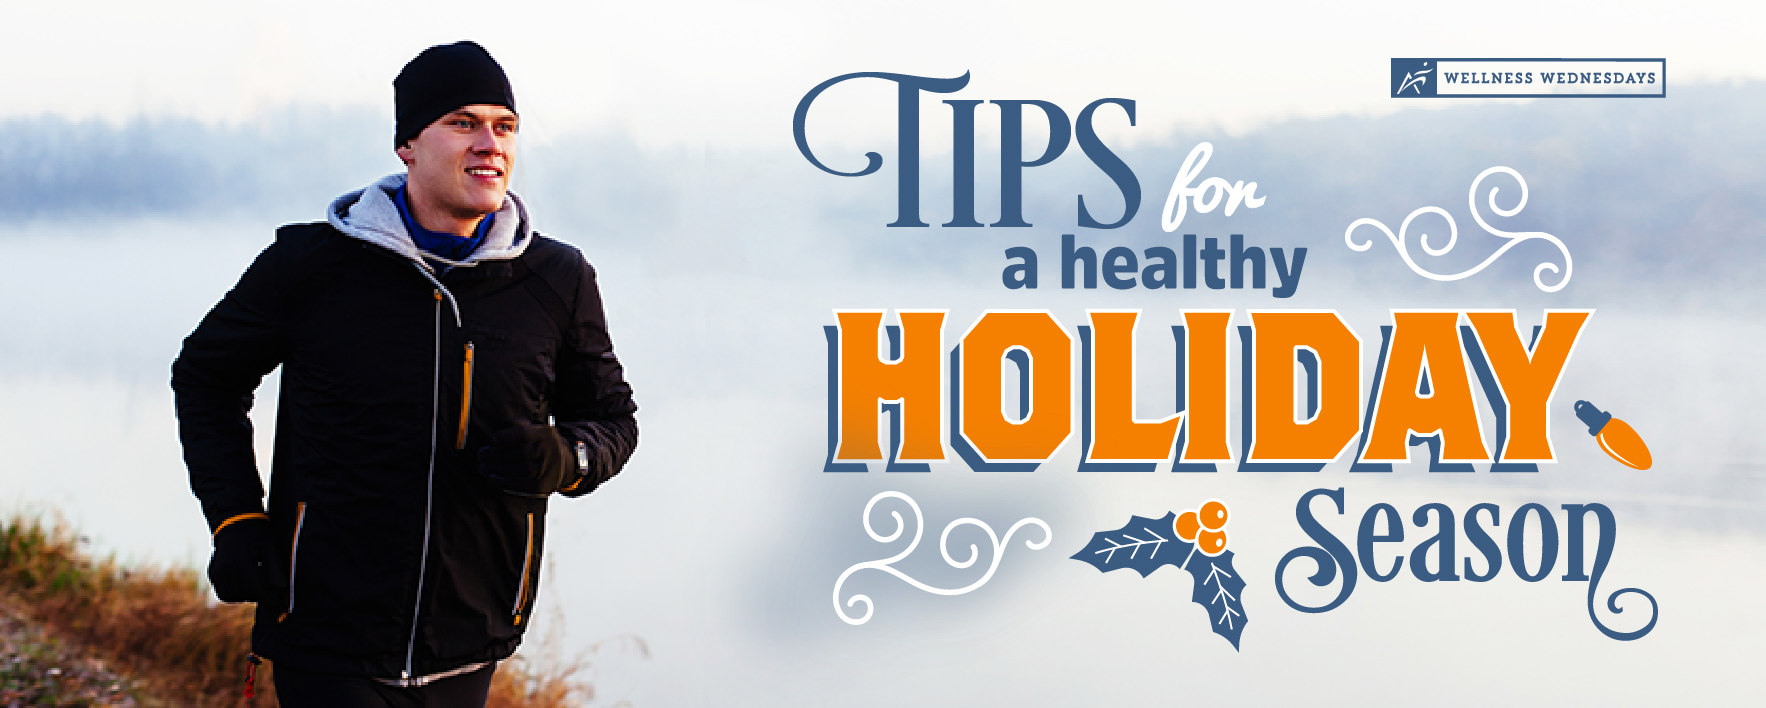 Tips for a healthy holiday season with man running